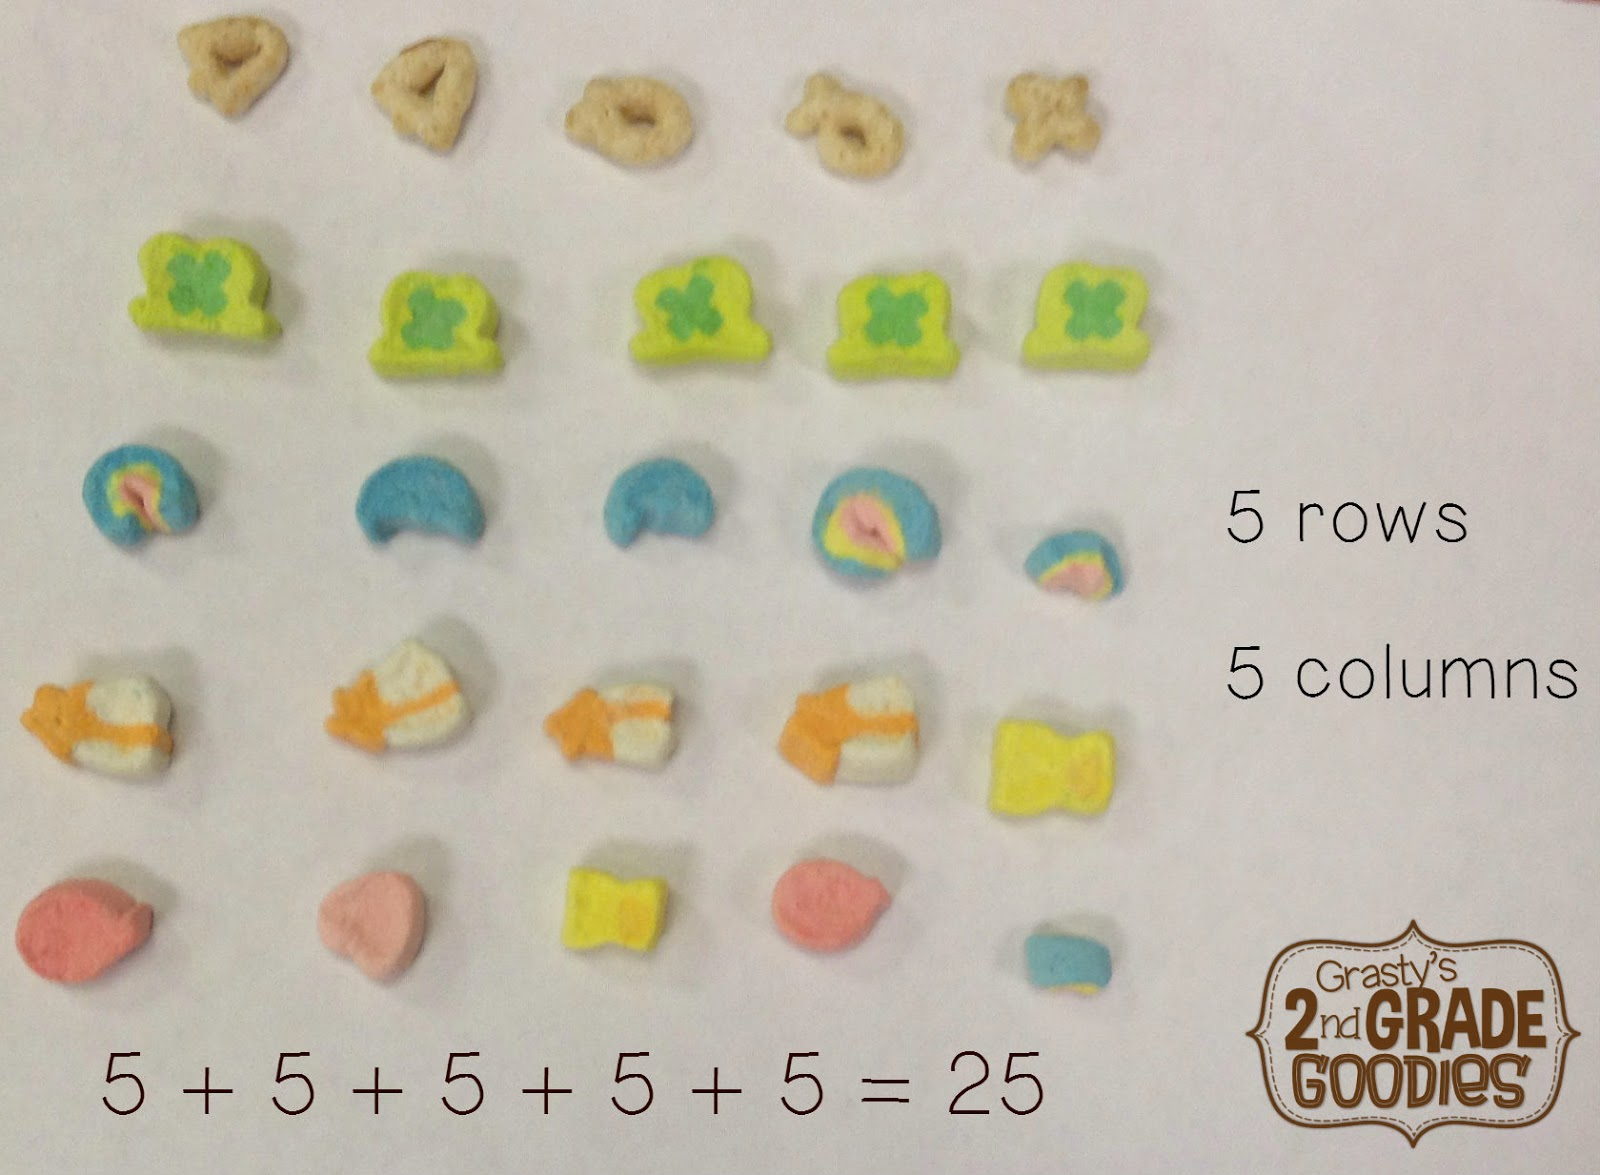 medium resolution of Grasty's 2nd Grade Goodies: Addition Arrays and Cereal